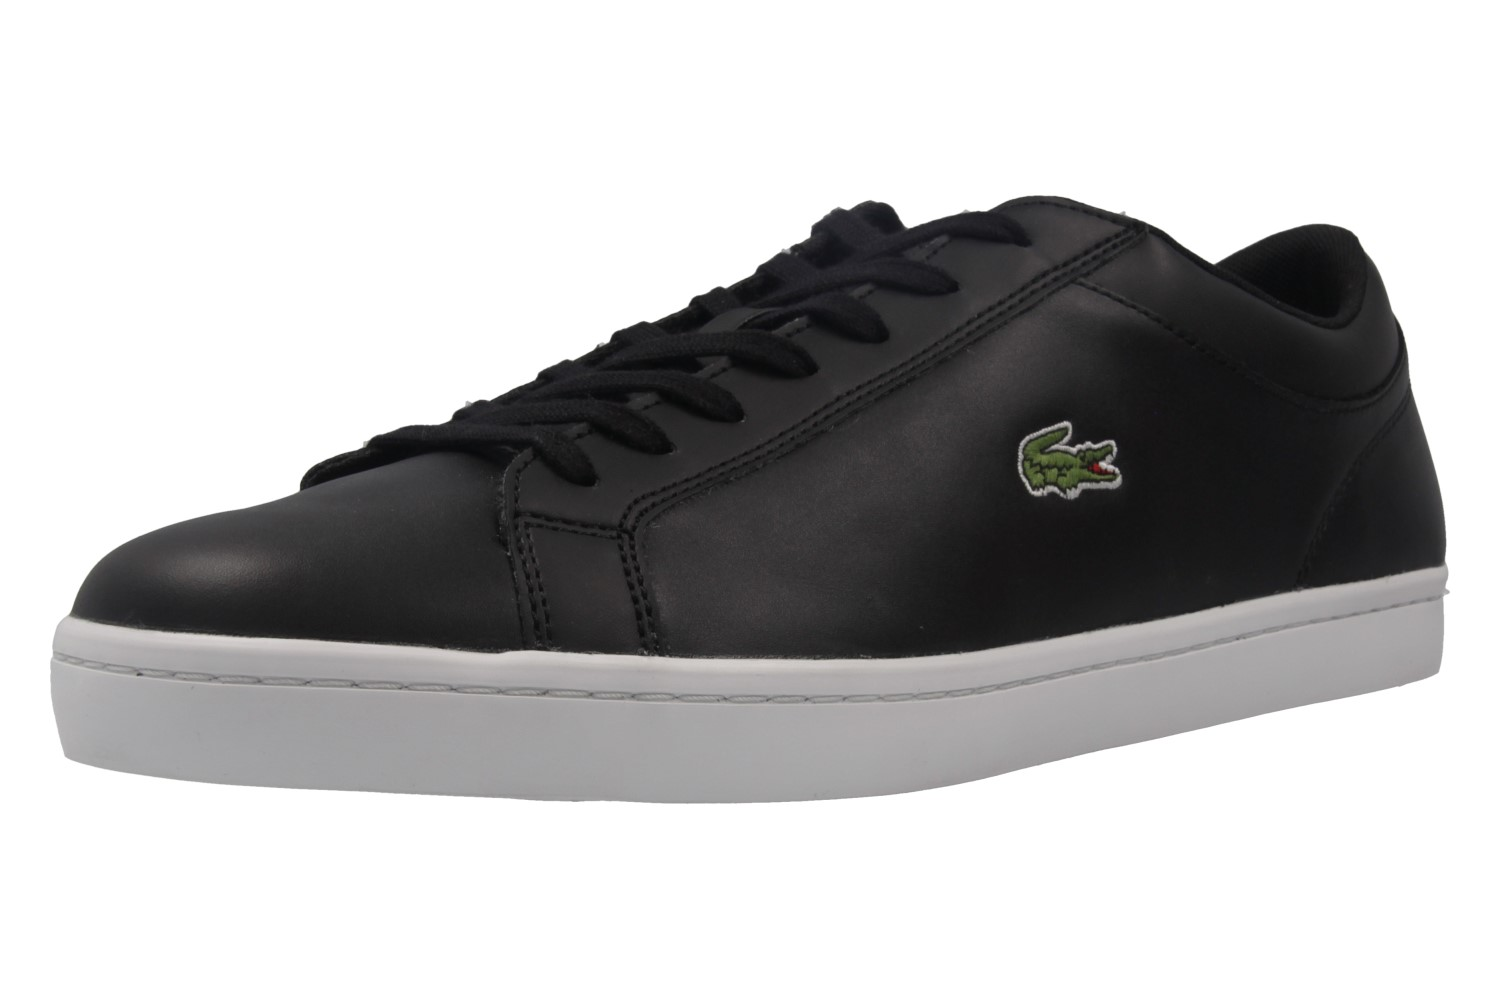 lacoste herren sneaker straightset bl schwarz schuhe in bergr en herrenschuhe in. Black Bedroom Furniture Sets. Home Design Ideas